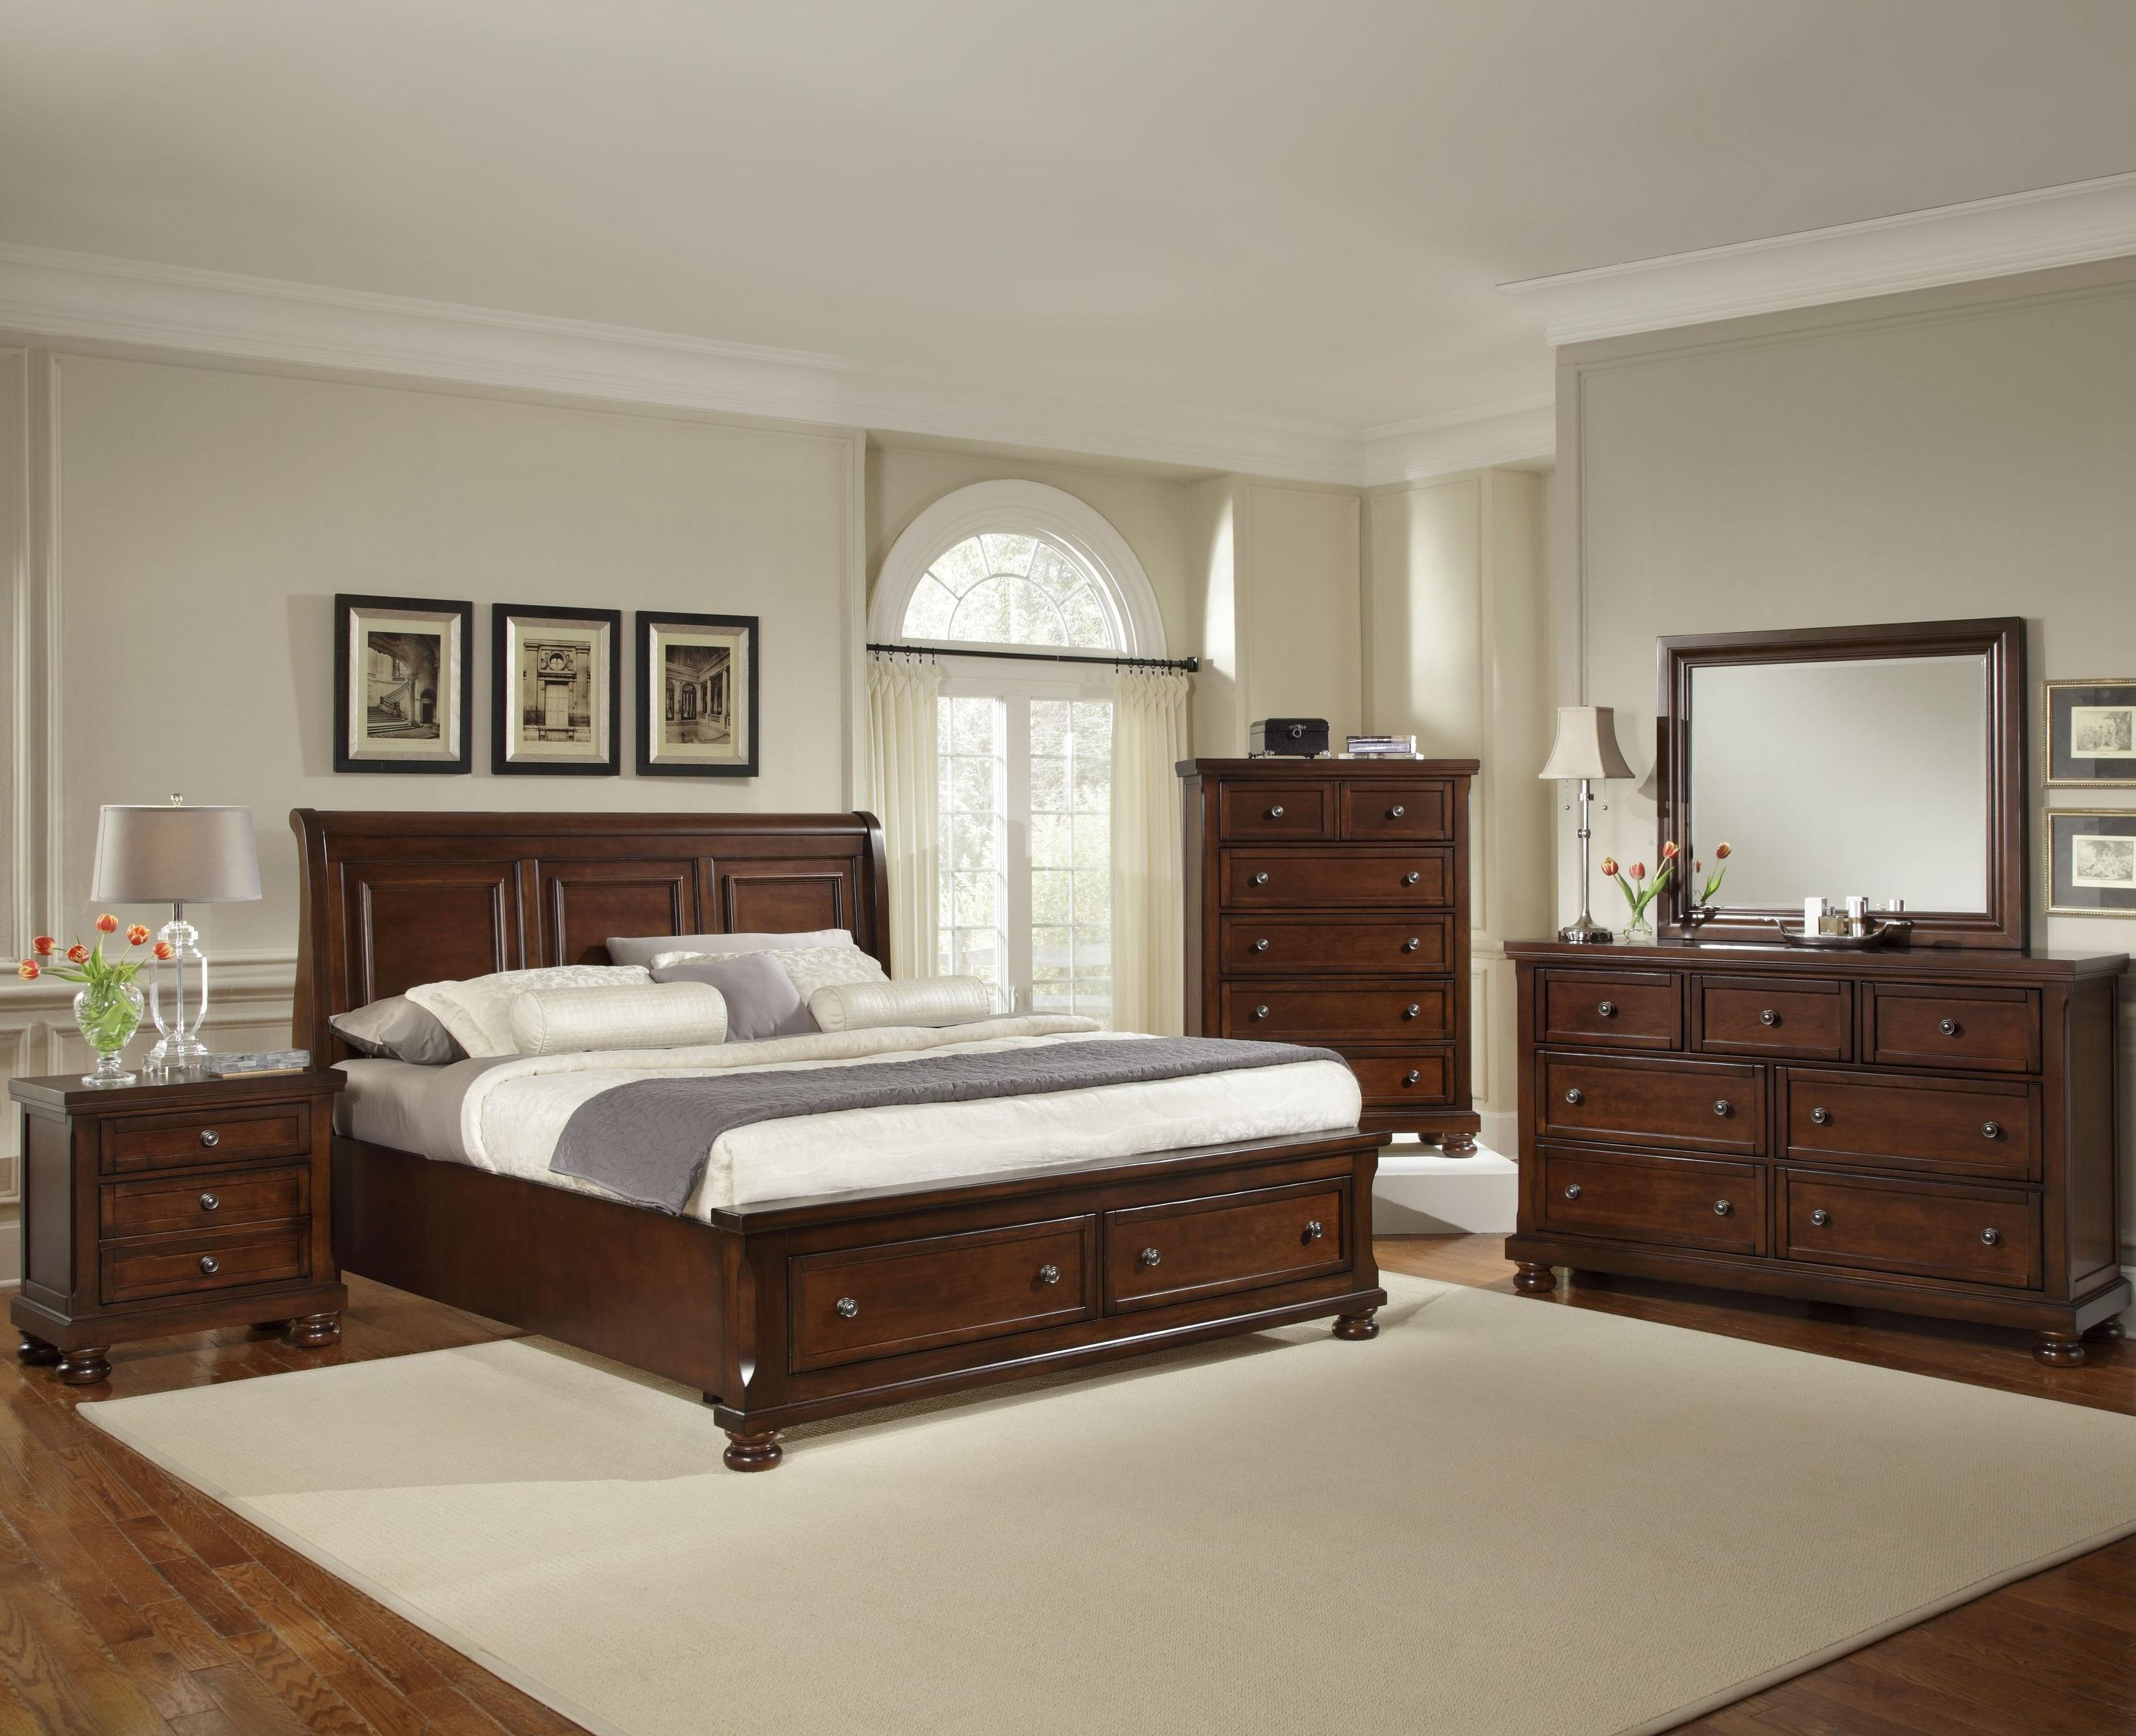 Vaughan Bassett Reflections Queen Bedroom Group Wayside Furniture Bedroom Groups